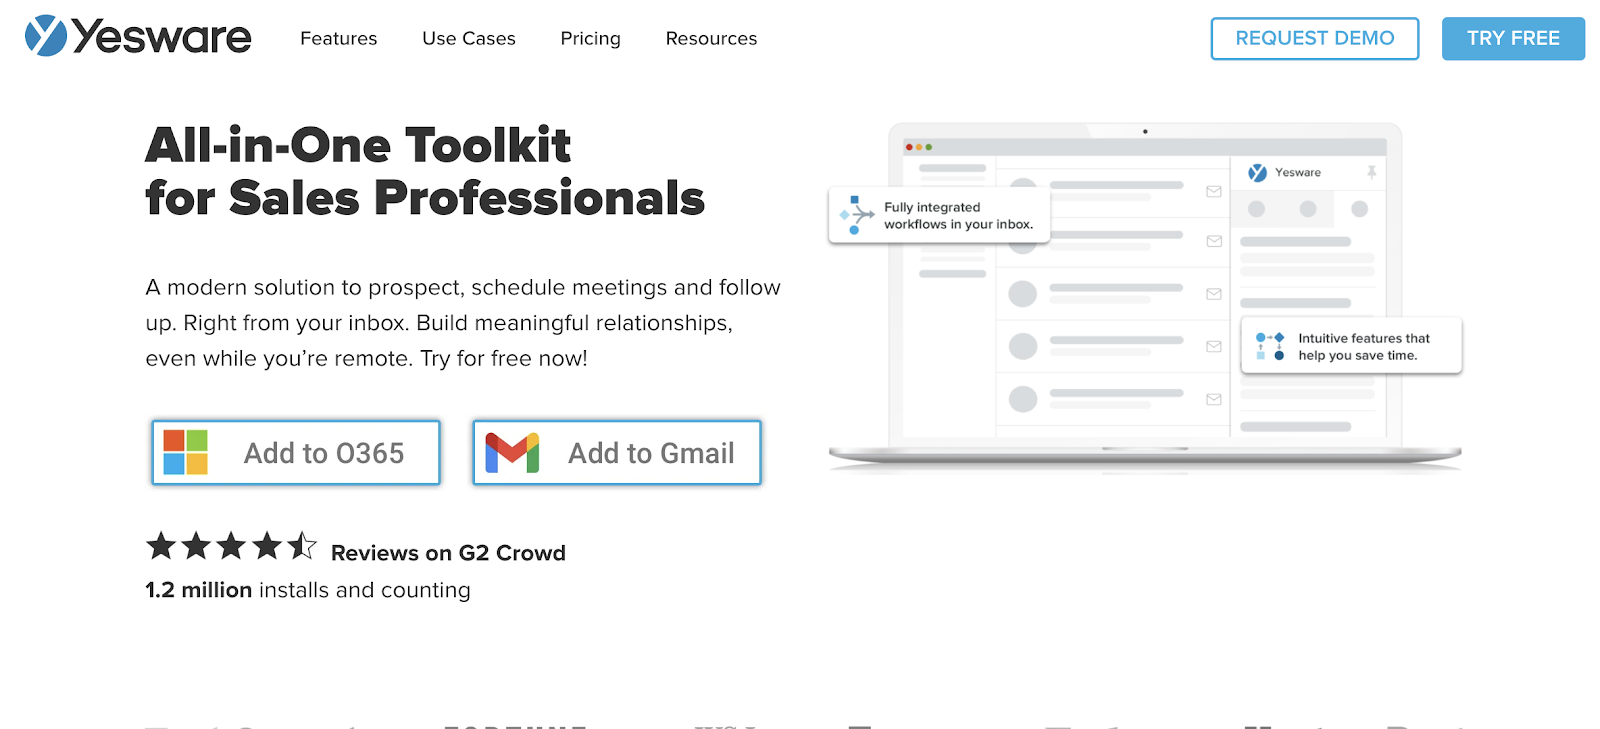 Yesware gmail crm tool